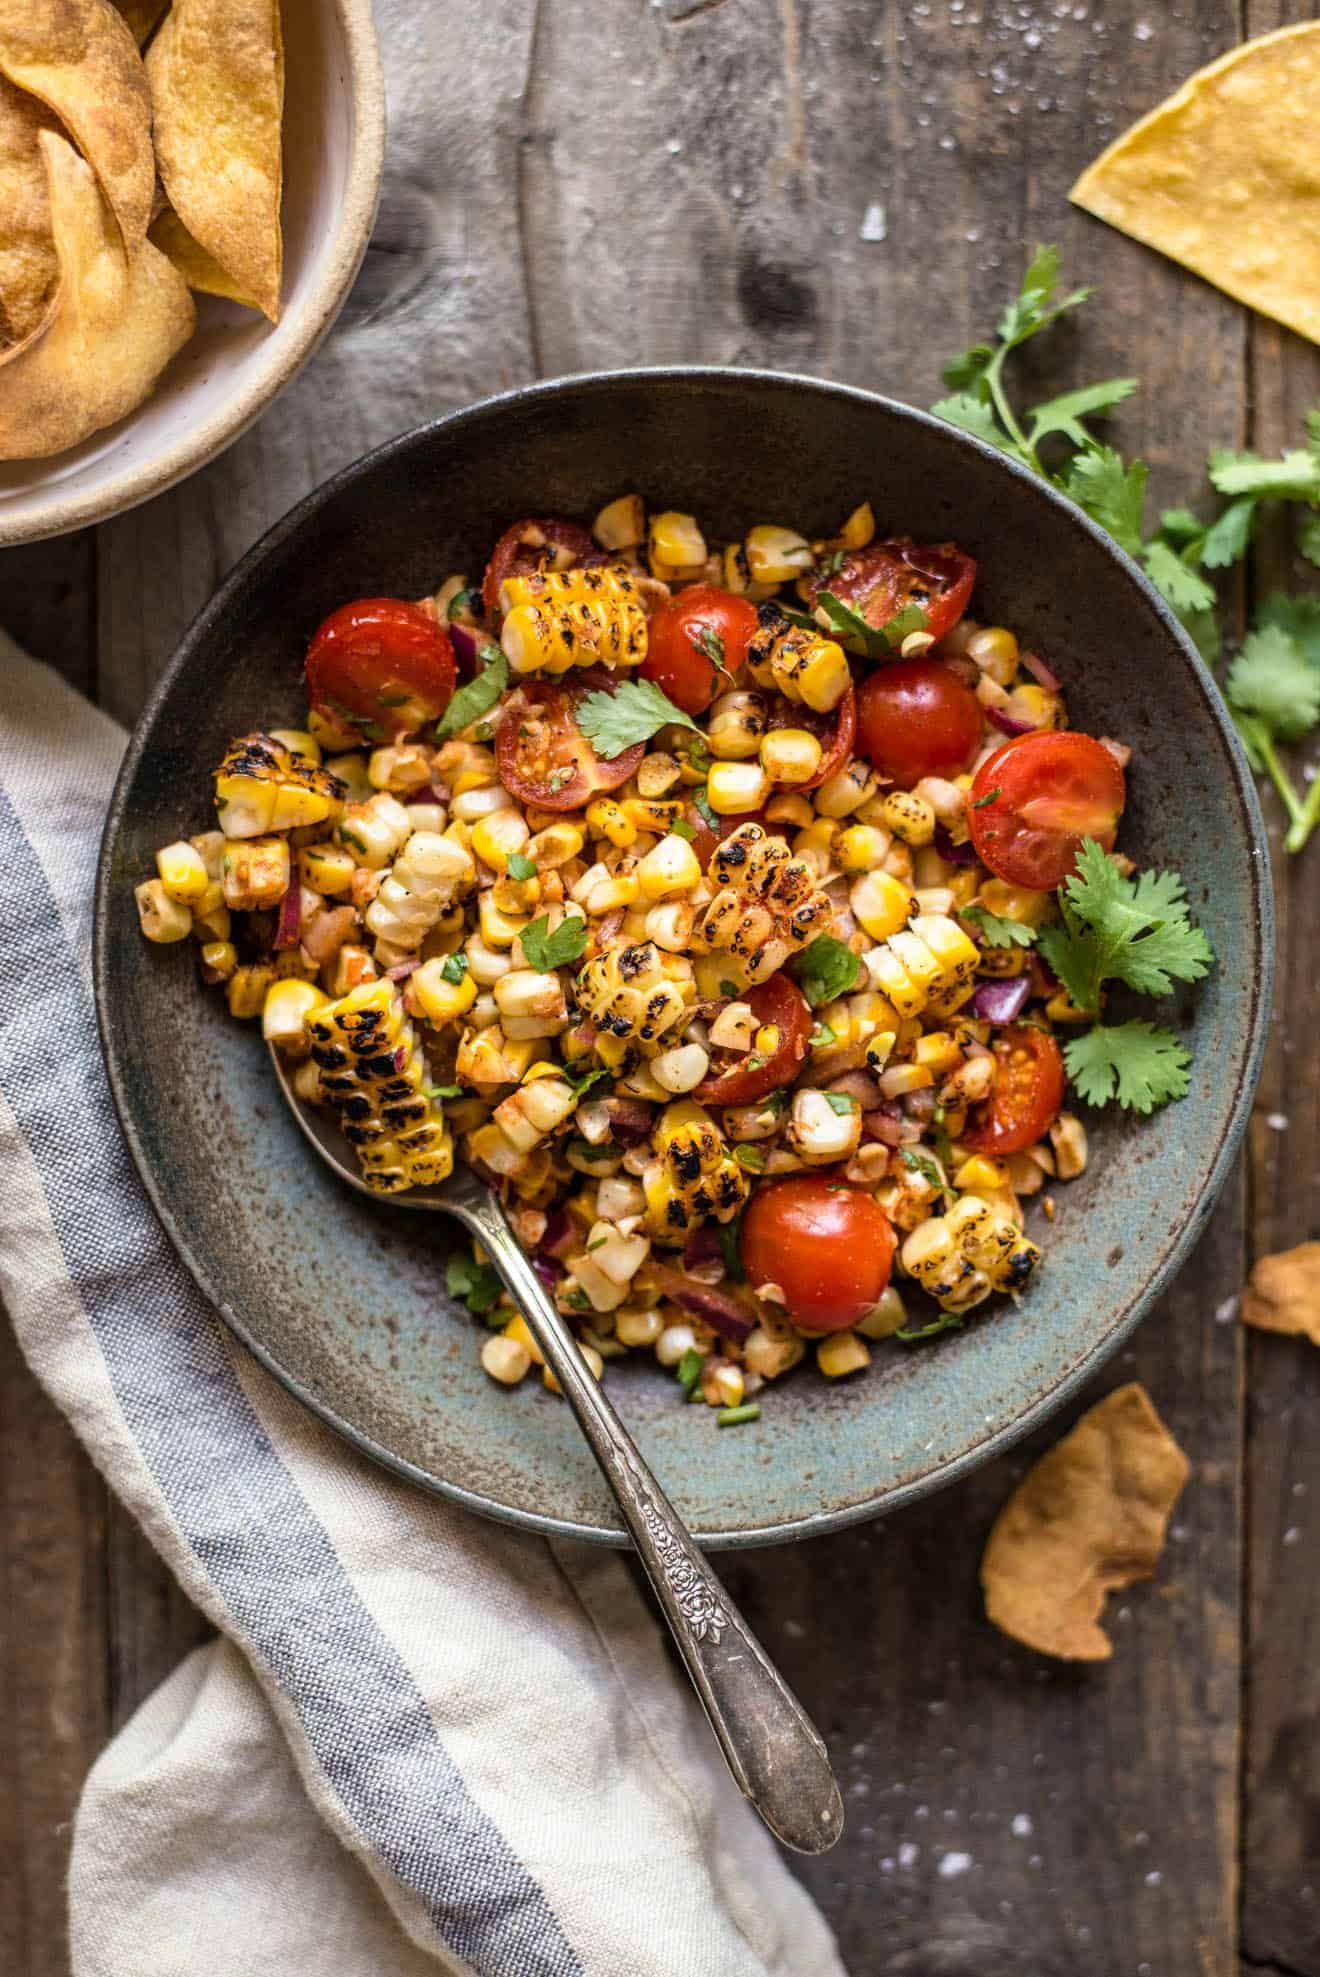 EASY Grilled Corn Salsa (without the BBQ Grill) - This simple grilled corn salsa is prepared with the corn grilled right on the stove! Great for parties and gatherings!